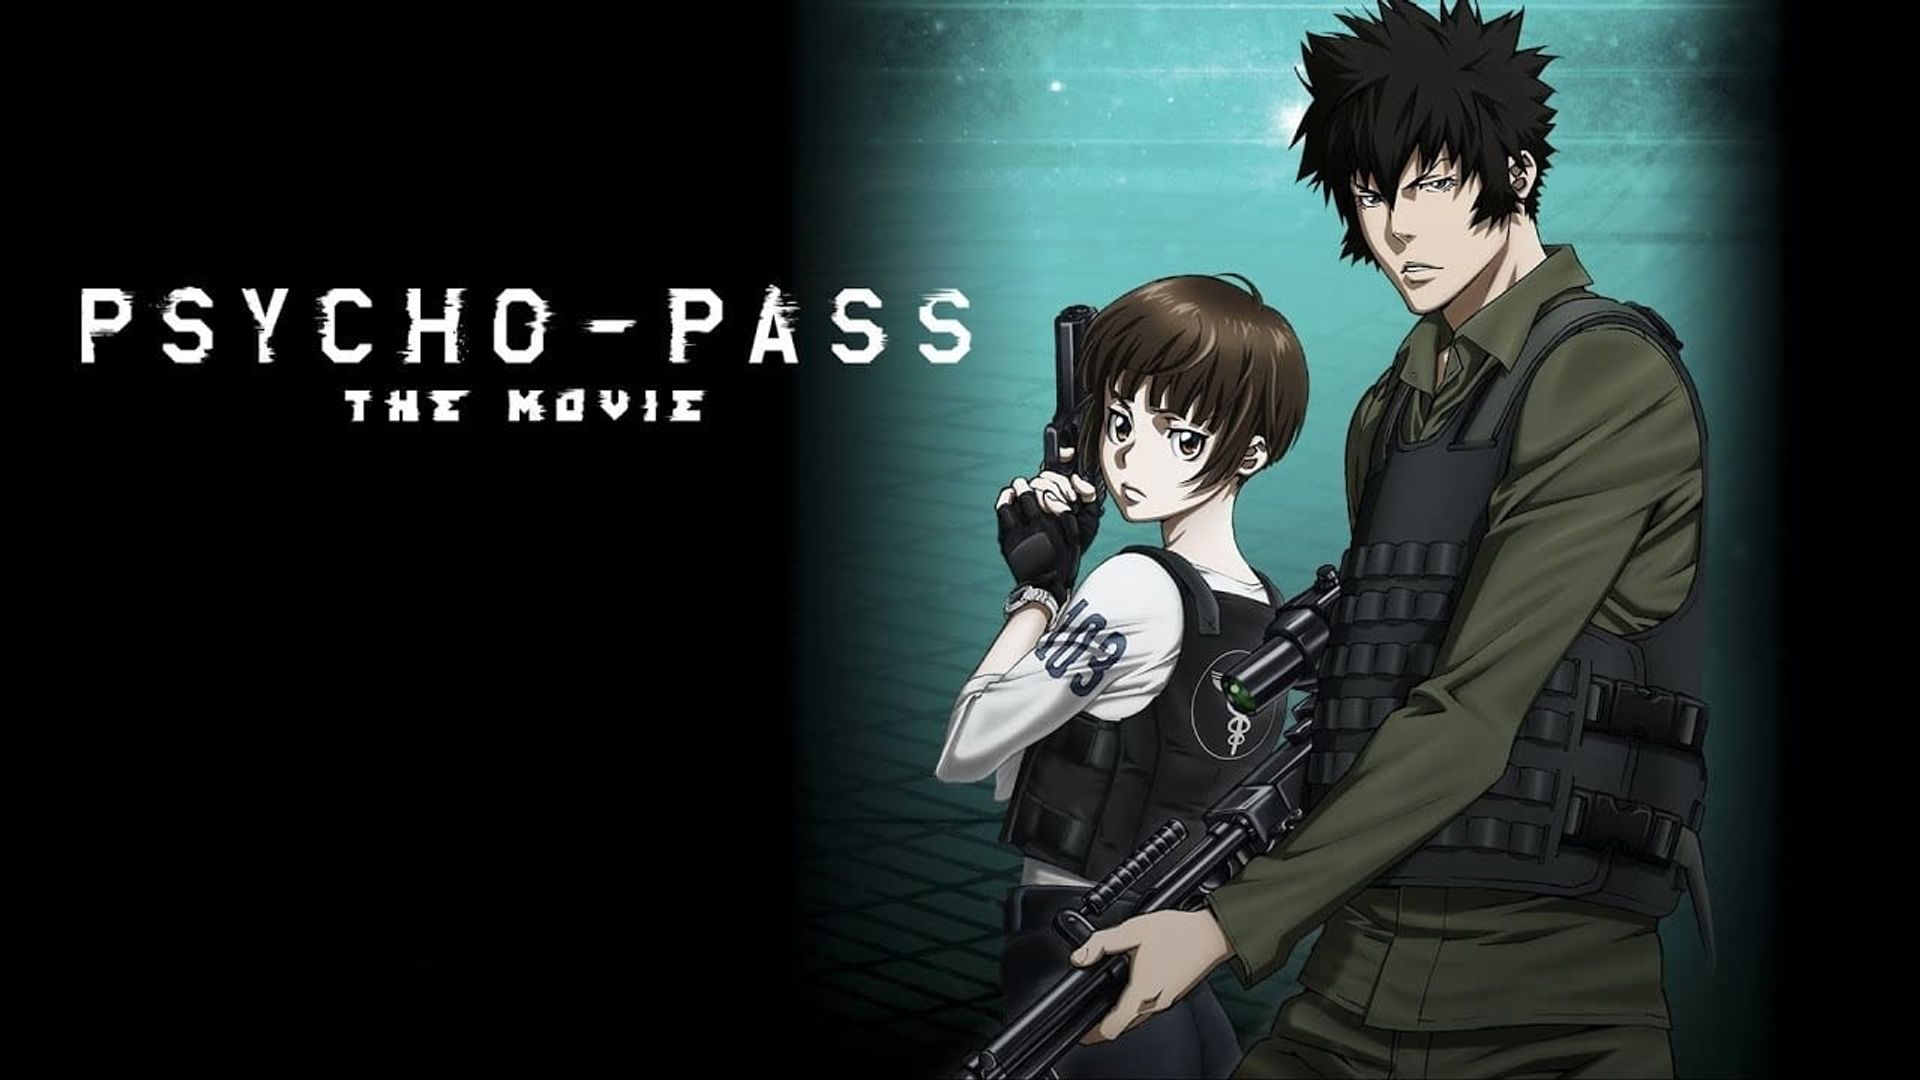 Psycho Pass The Movie 2015 Where To Watch It Streaming Online Reelgood